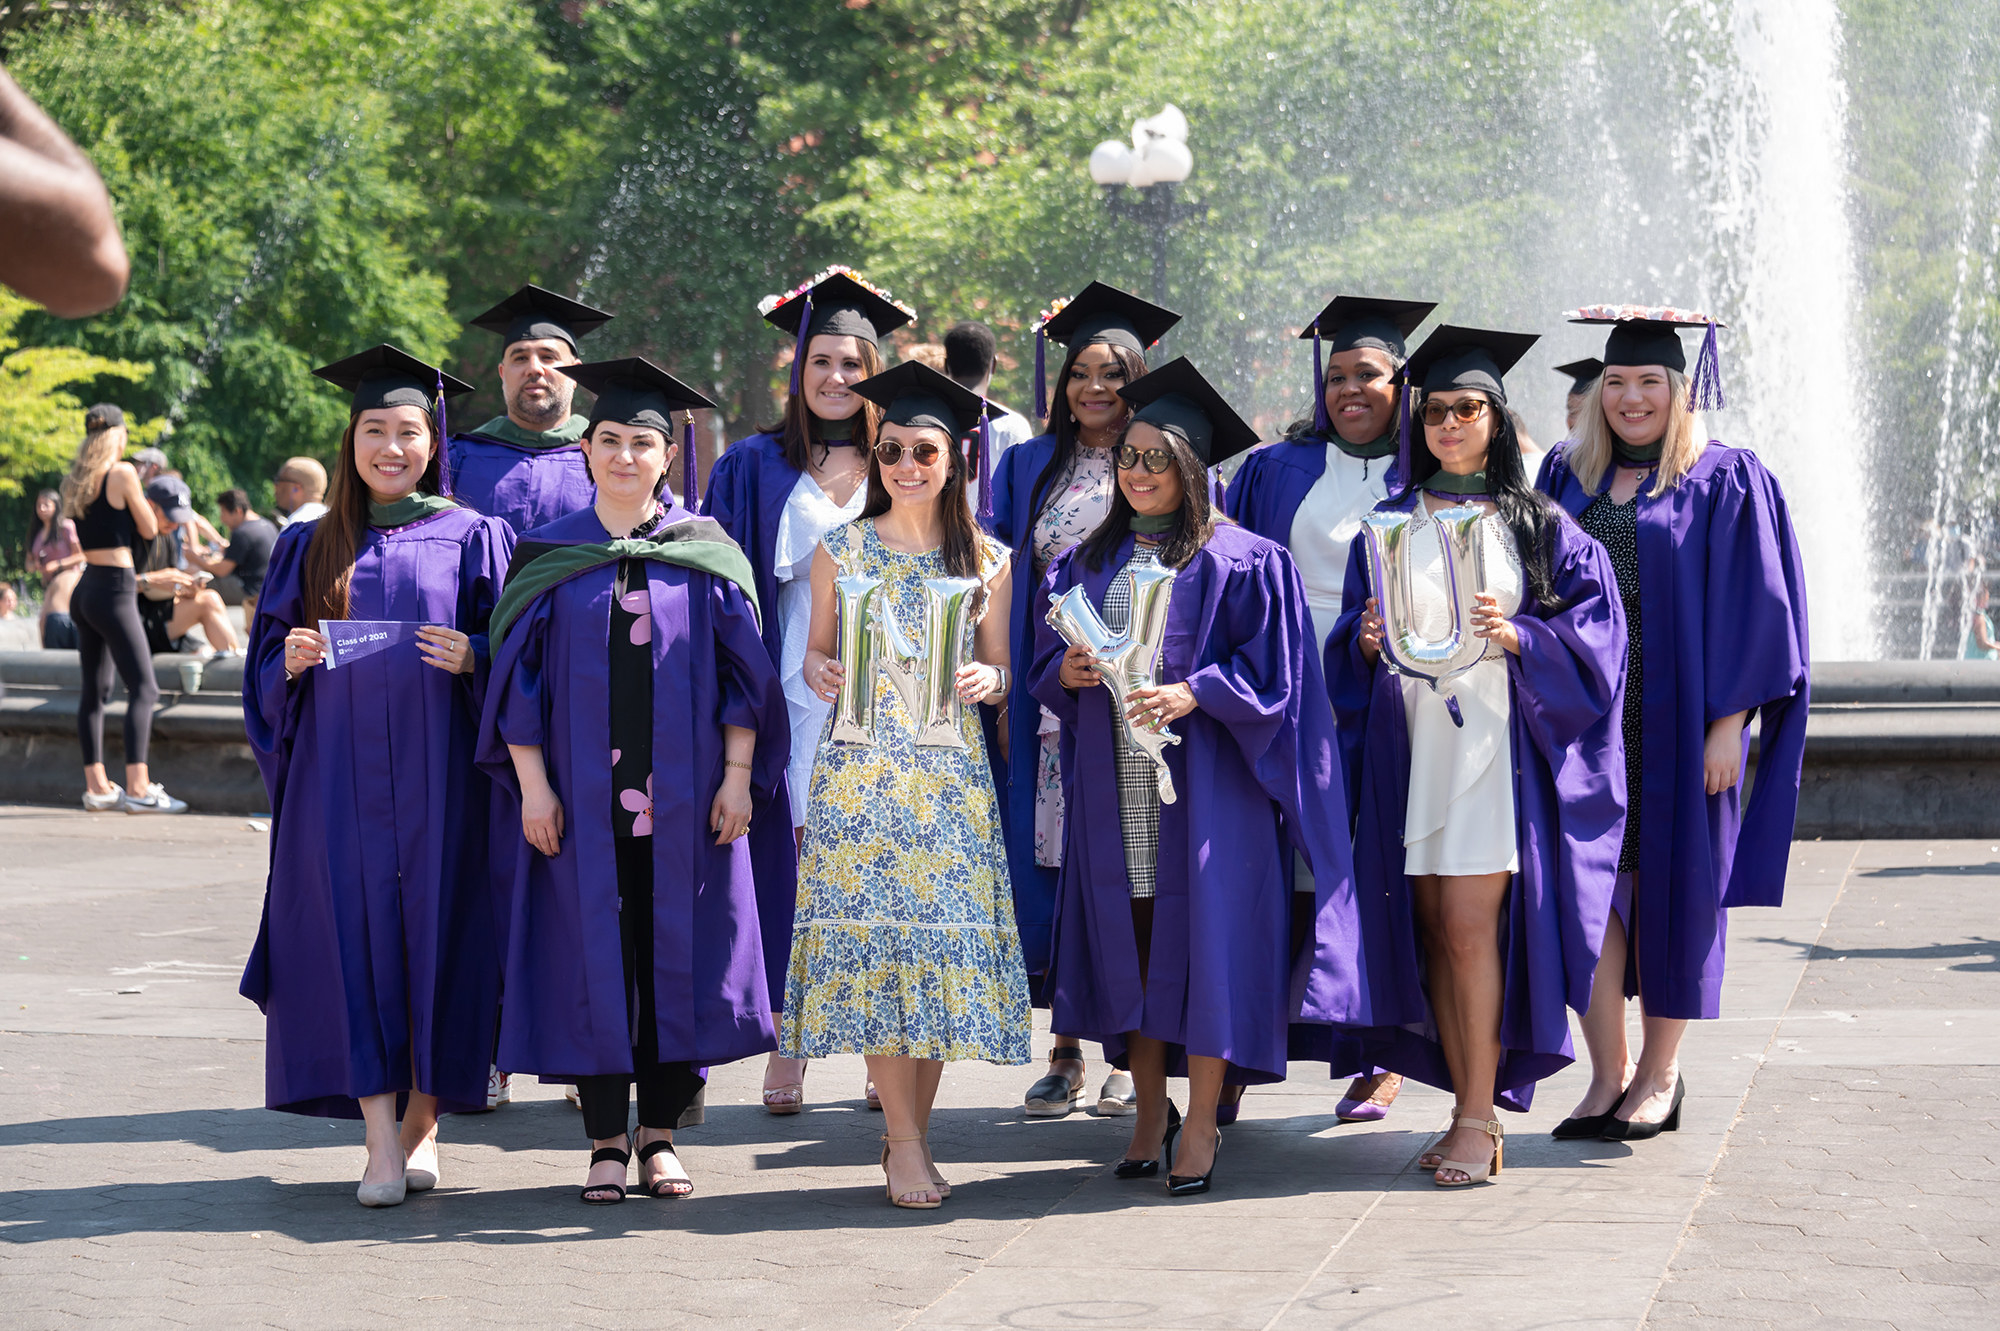 A group of NYU graduates in purple robes and graduation caps stand in front of a fountain